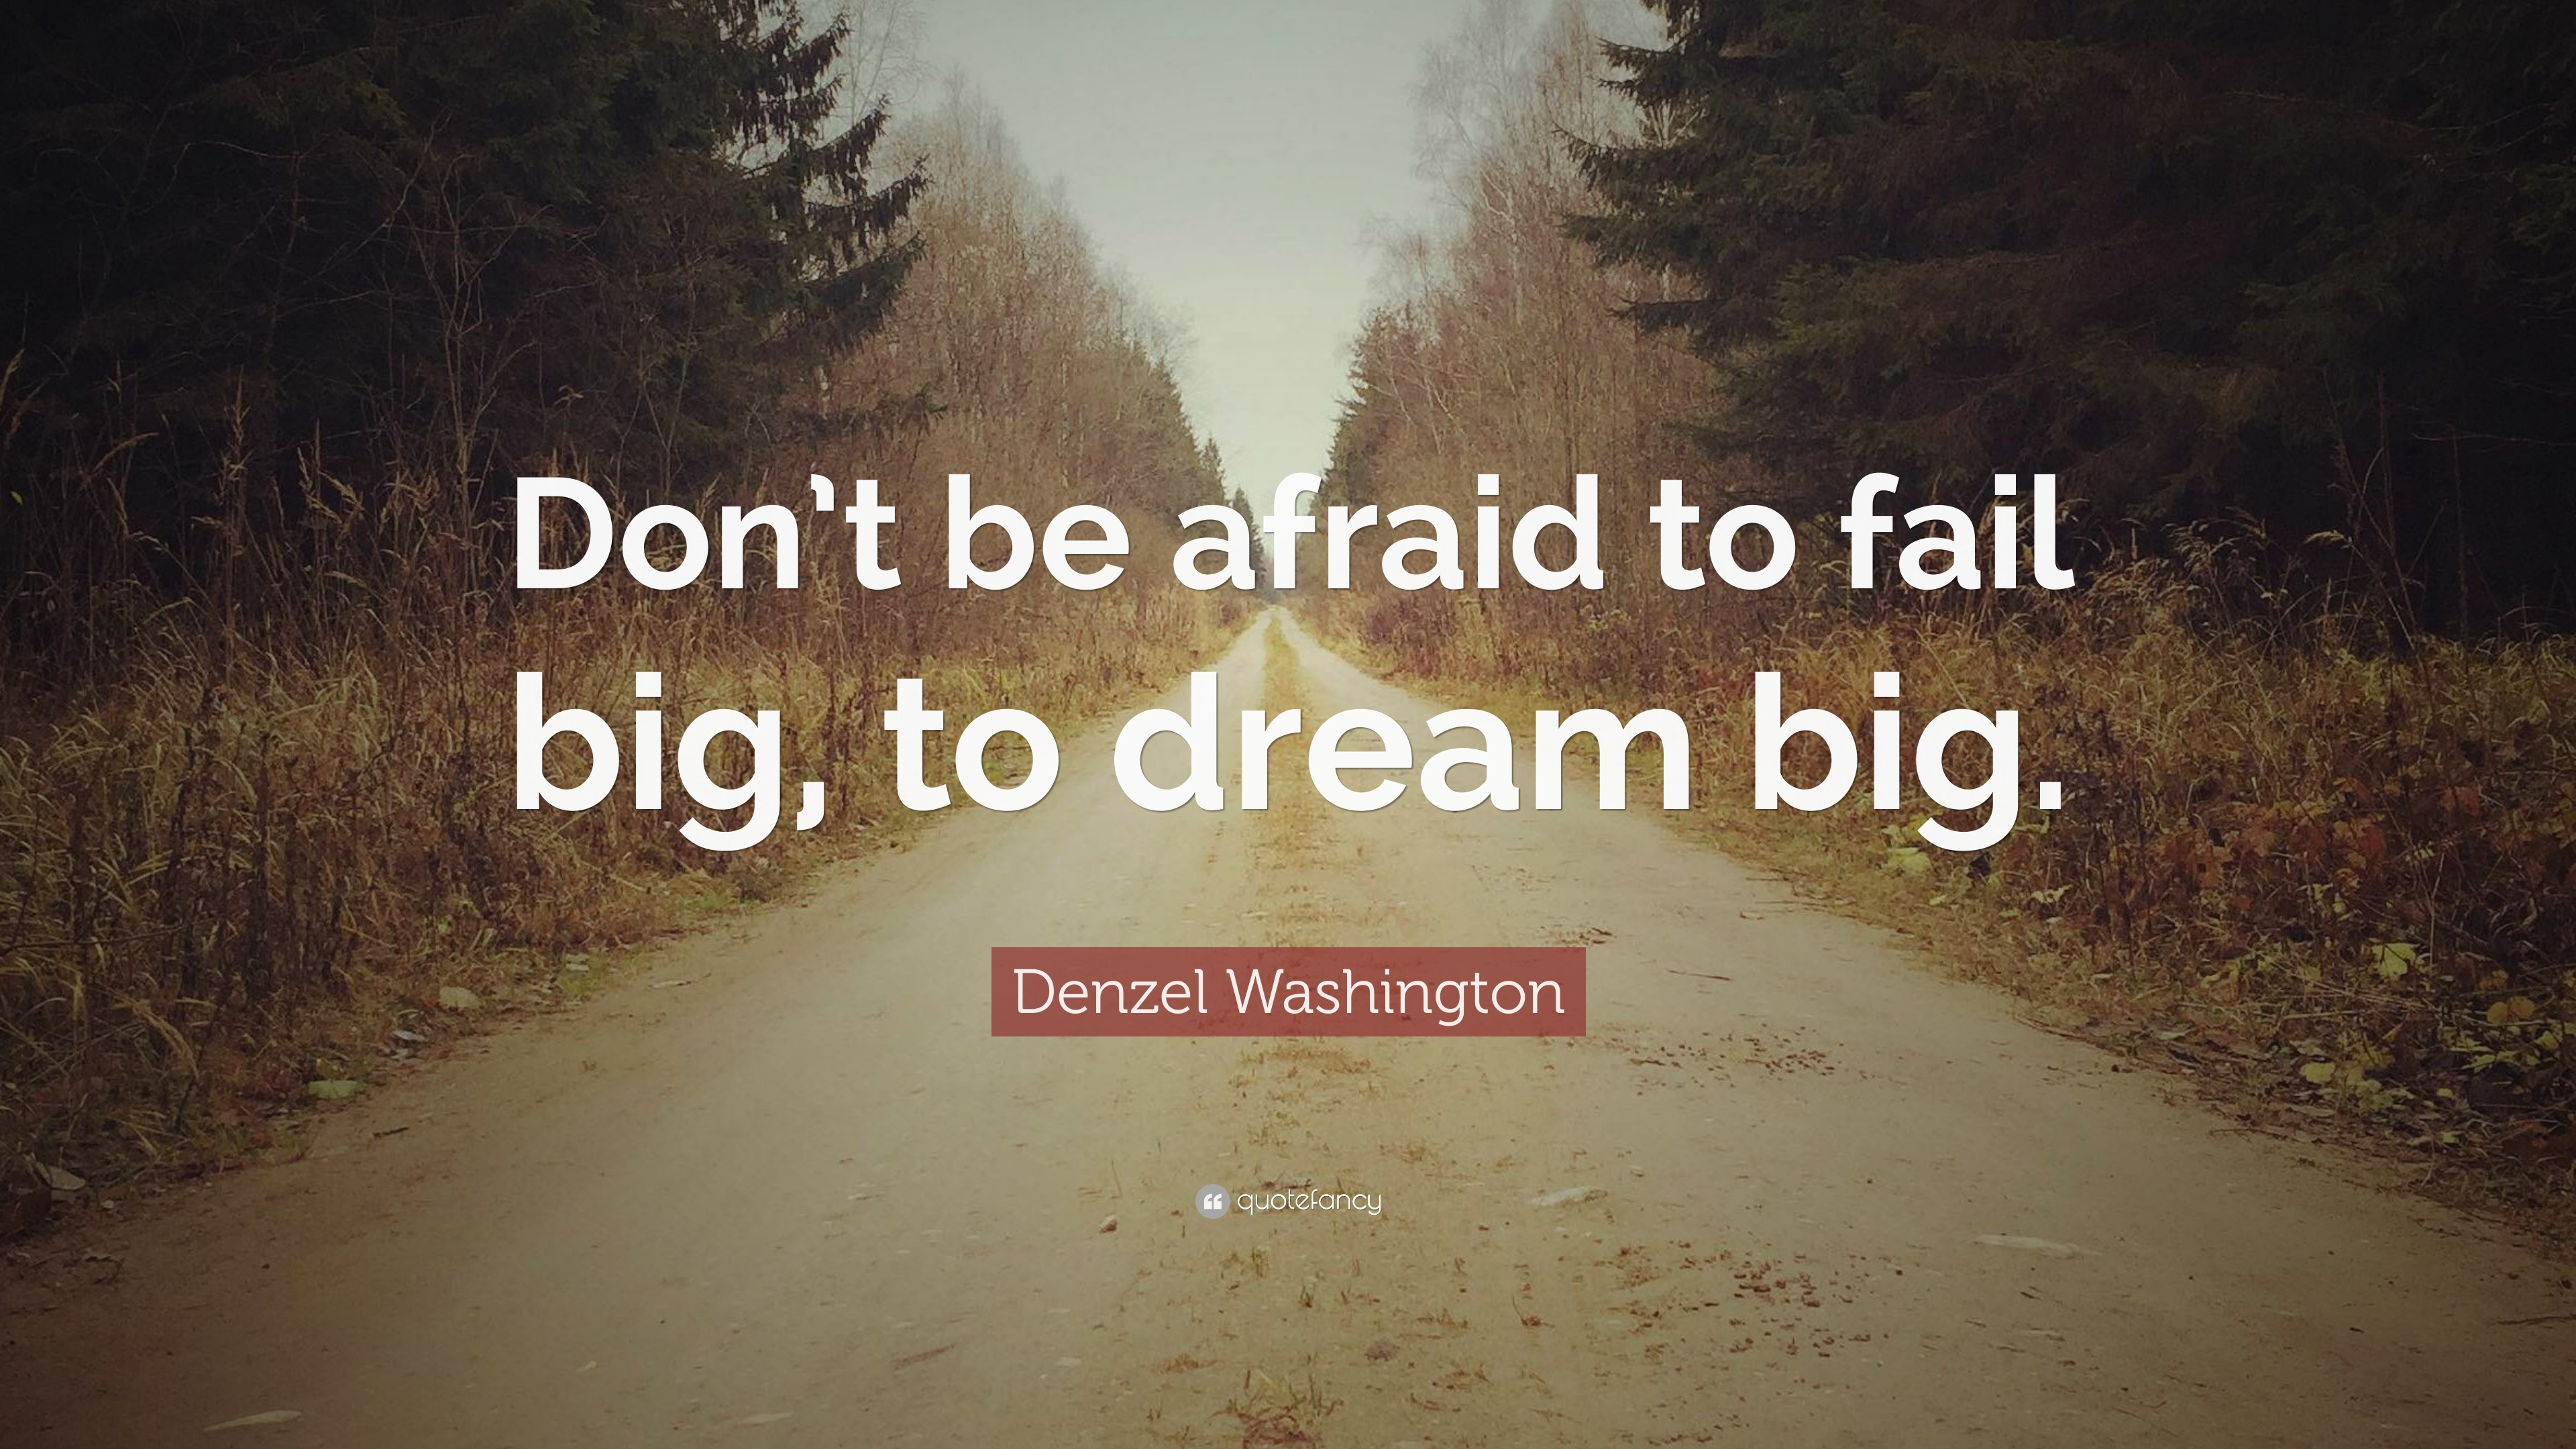 Denzel Washington Quote Wallpaper Denzel Washington Quote Don T Be Afraid To Fail Big To